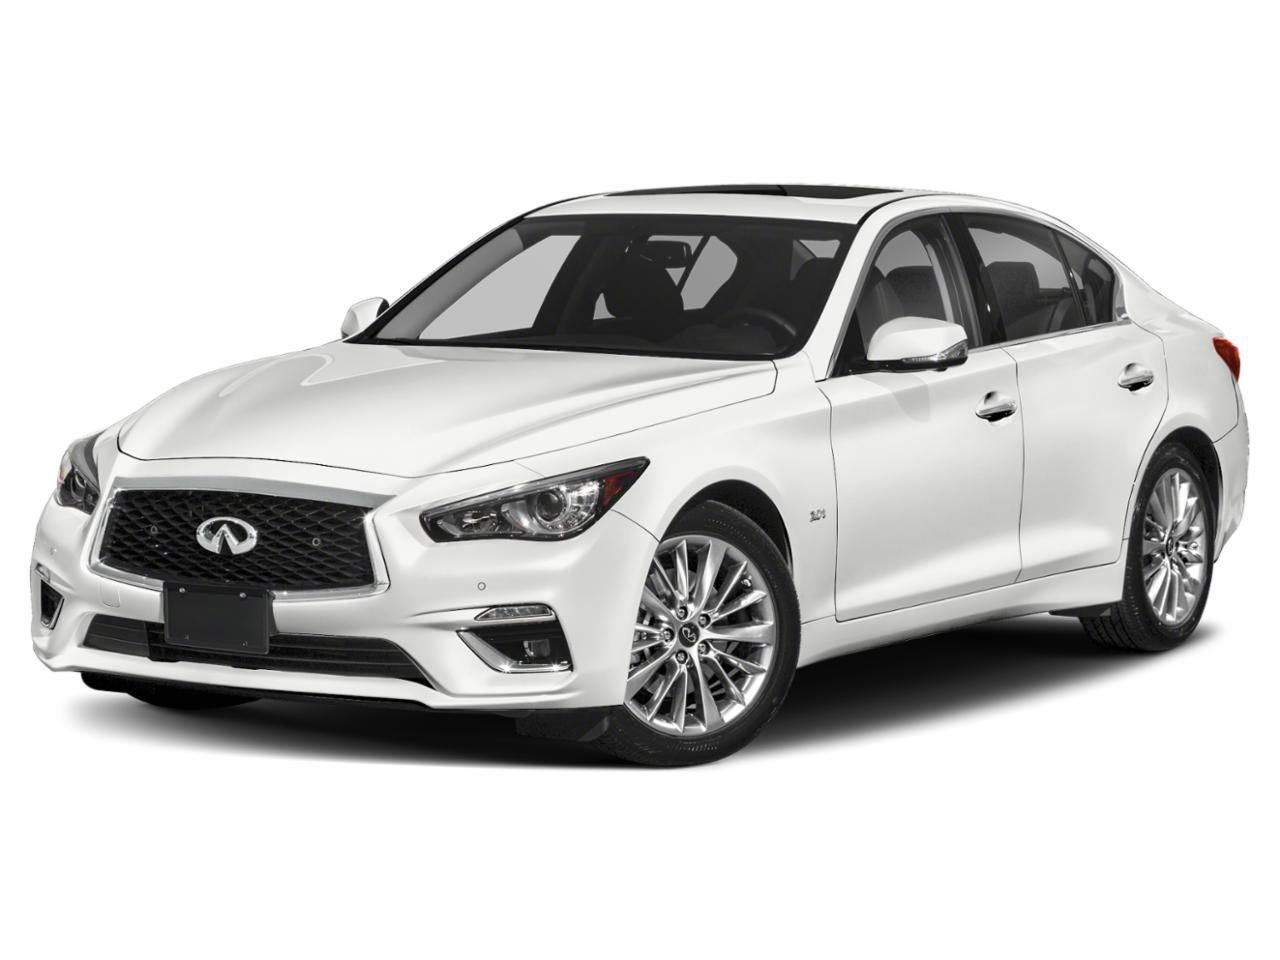 2019 INFINITI Q50 Vehicle Photo in Broussard, LA 70518